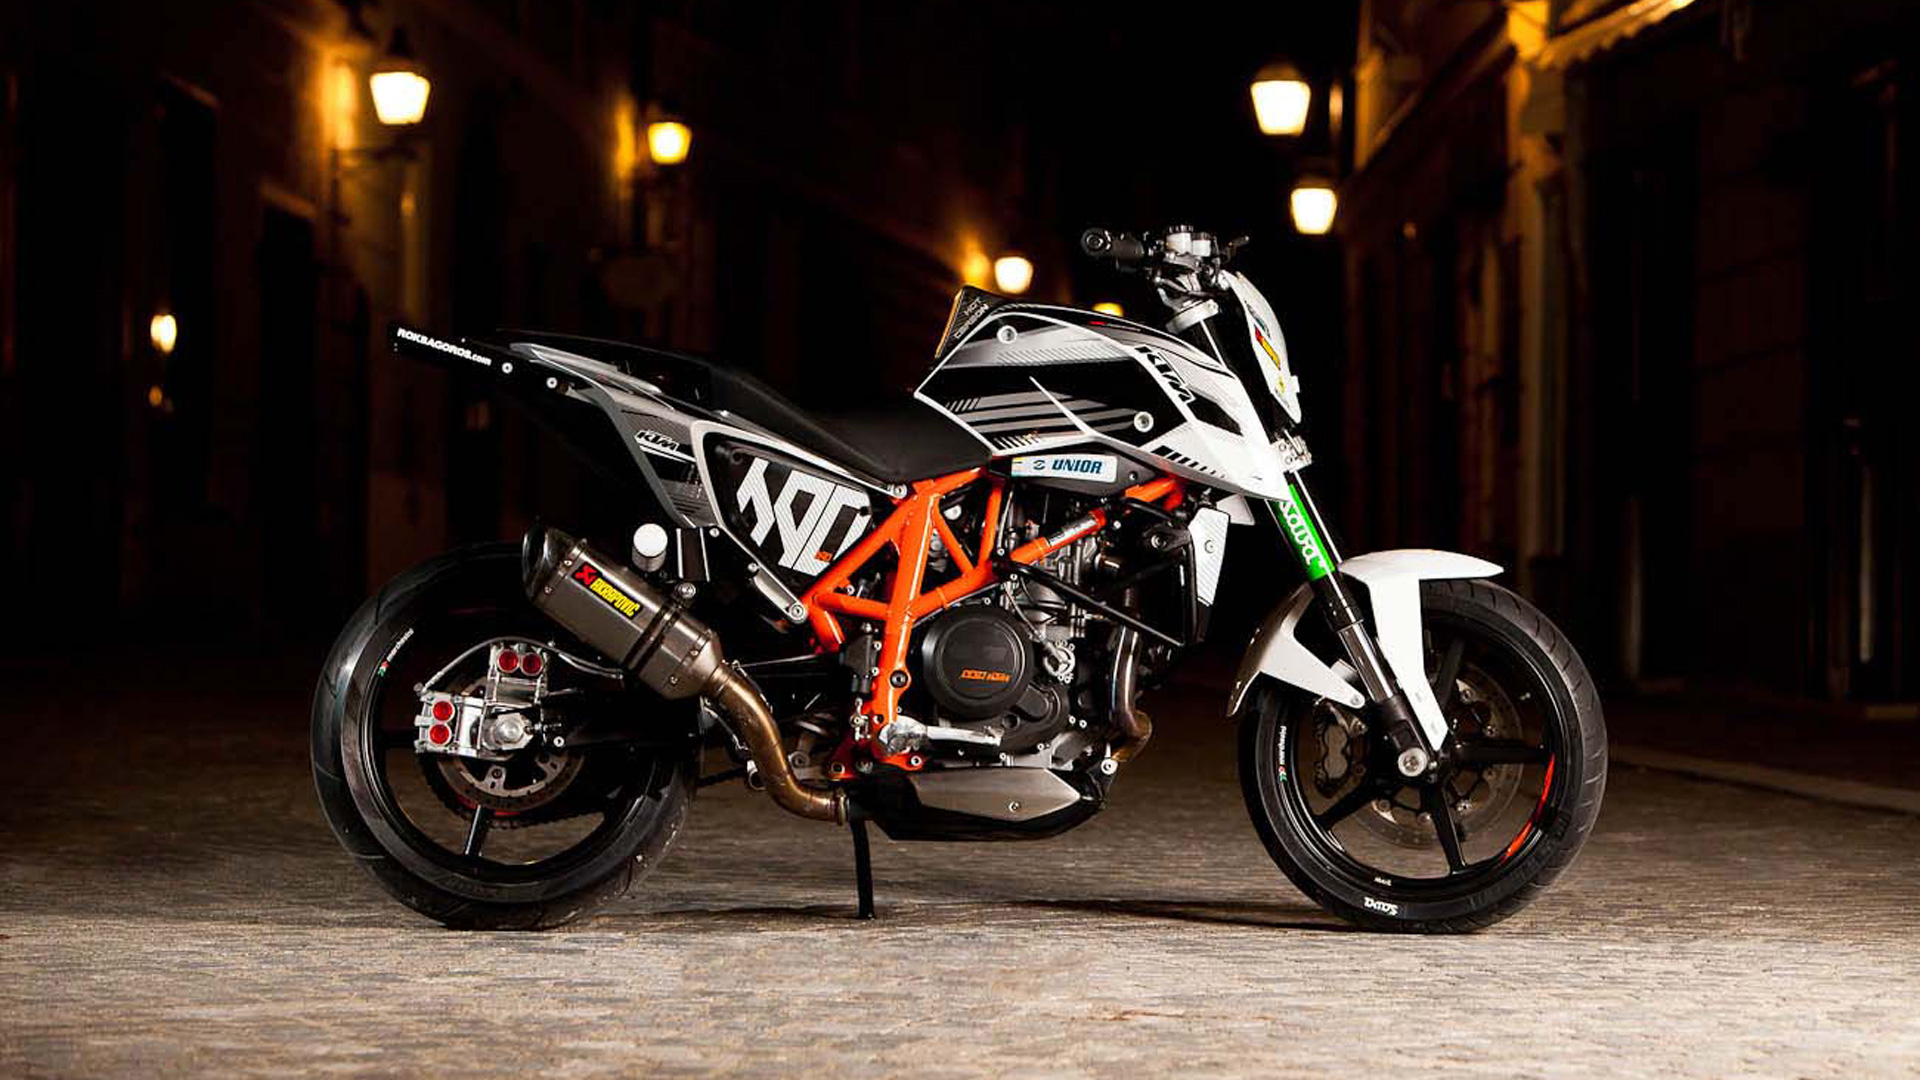 Ktm motorcycles hd wallpapers free wallaper downloads ktm sport - Wallpaper Wiki Motor Sport Images Pic Wpe002499